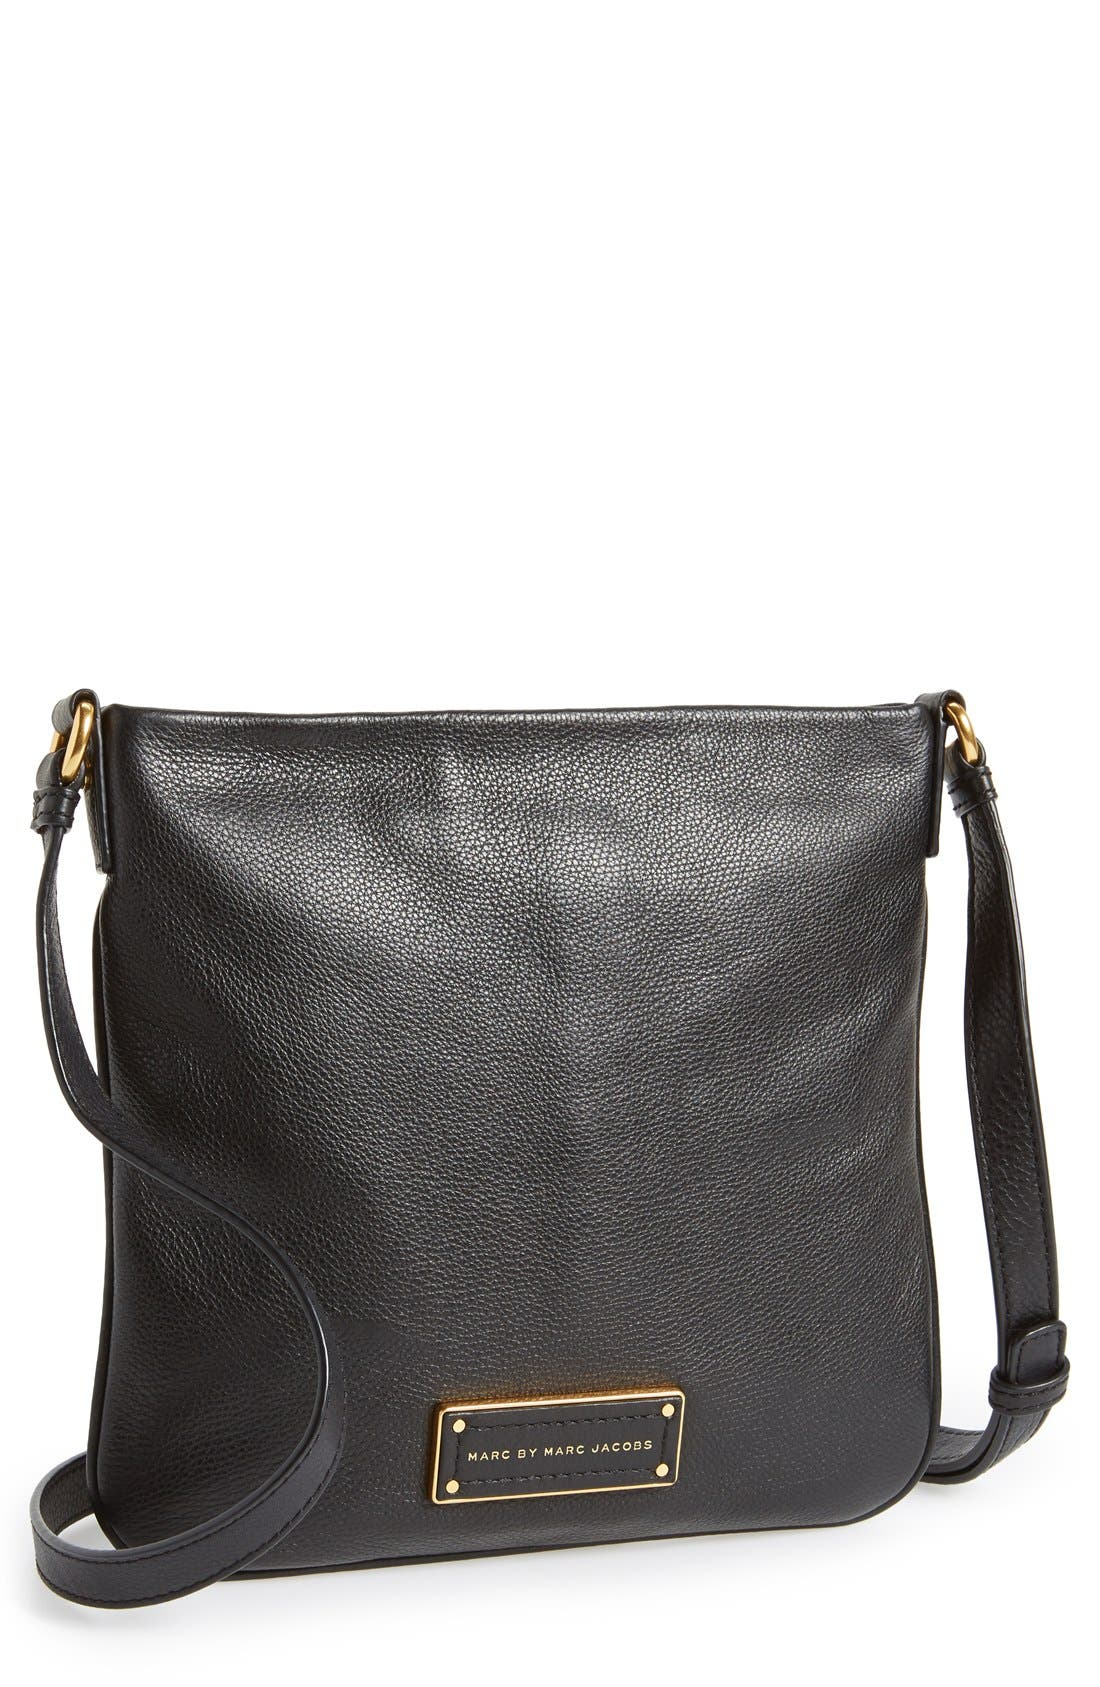 MARC JACOBS,                             MARC BY MARC JACOBS 'Too Hot to Handle - Sia' Crossbody Bag,                             Main thumbnail 1, color,                             001